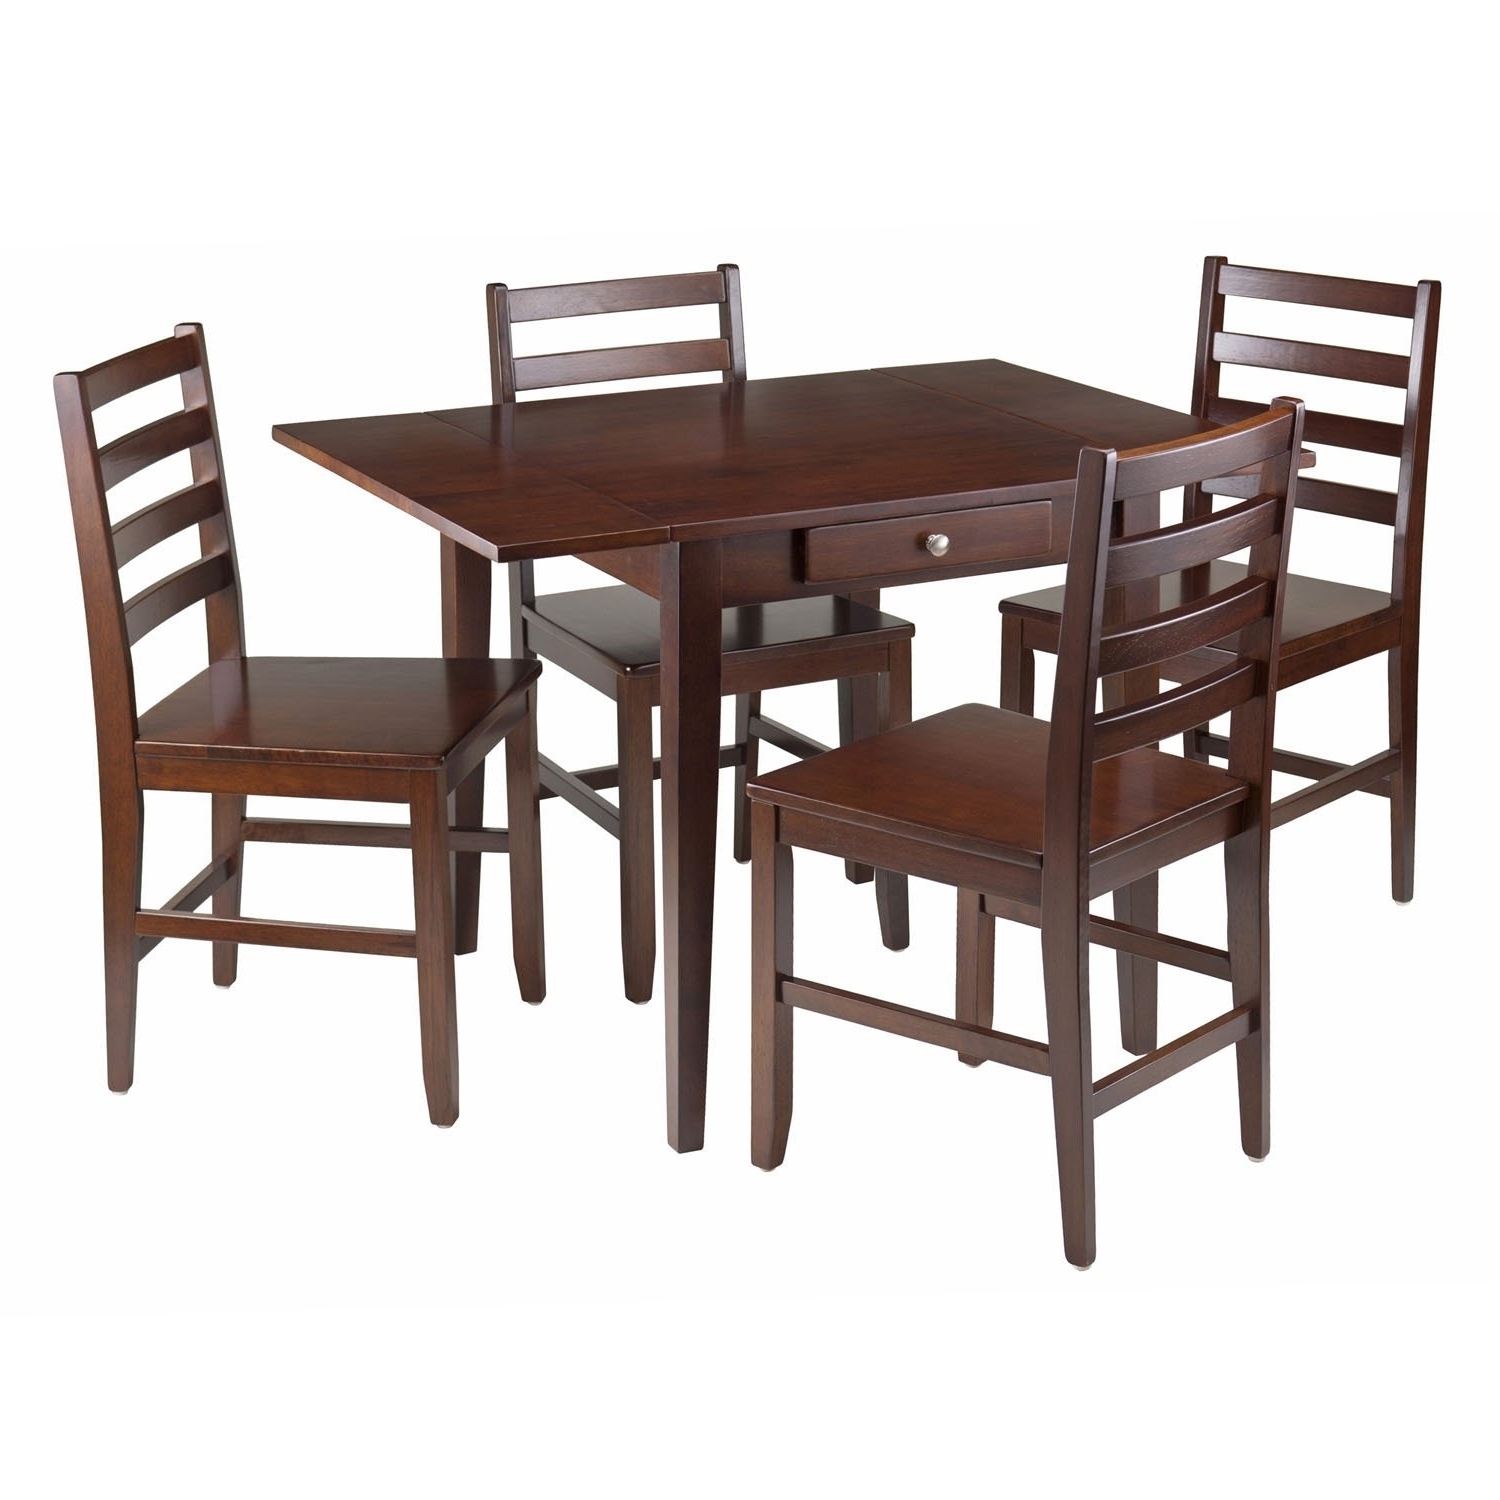 Hamilton Dining Tables for 2017 Hamilton 5-Pc Drop Leaf Dining Table With 4 Ladder Back Chairs